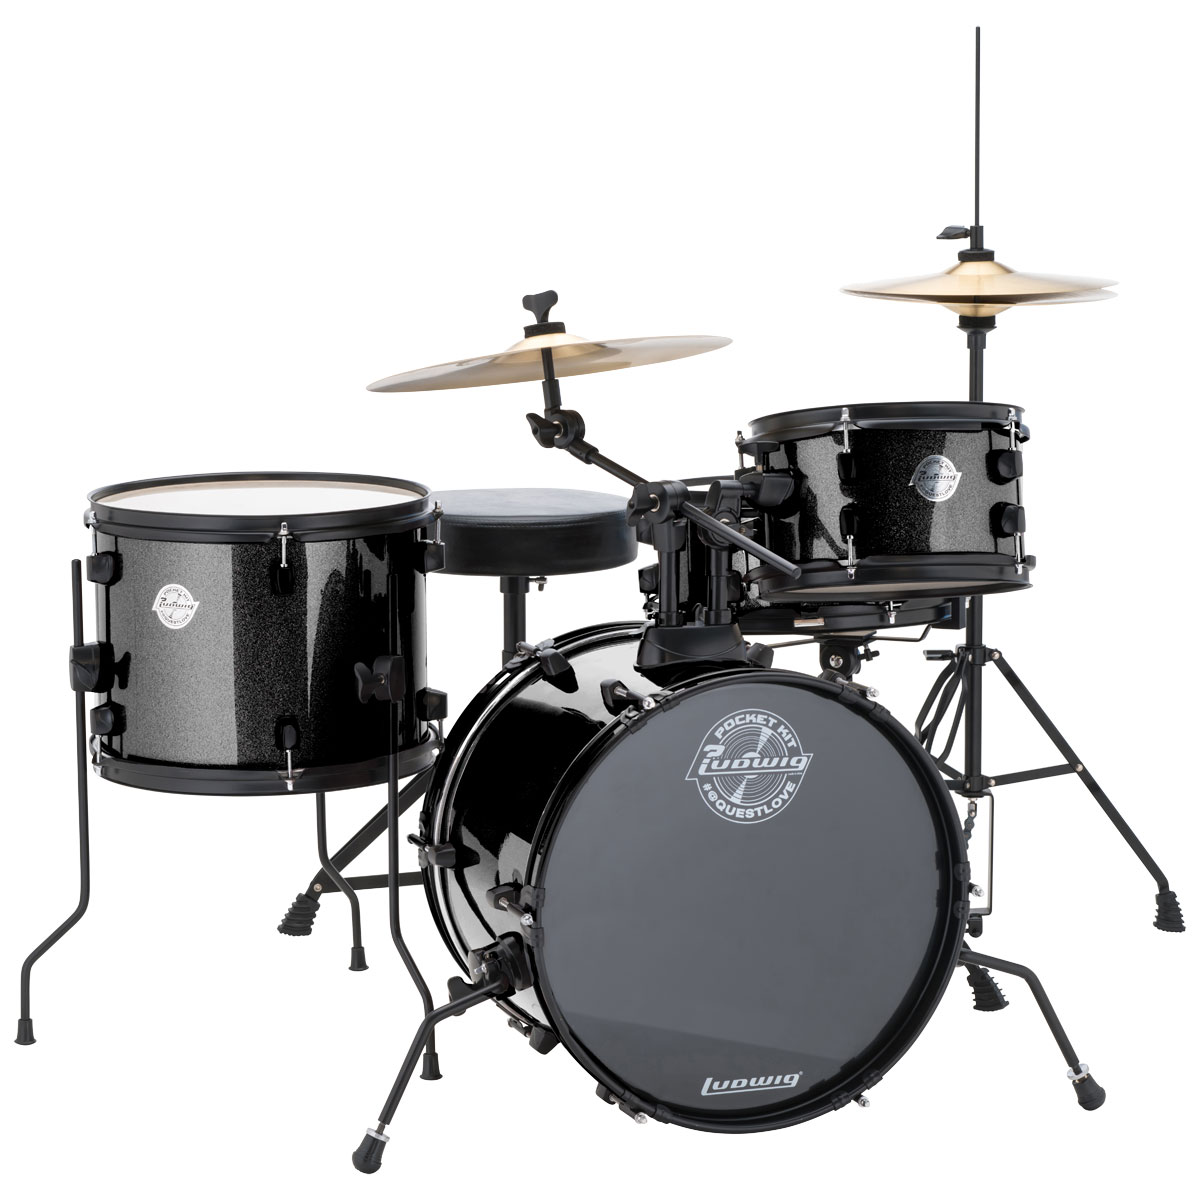 Alternate Image For Ludwig Pocket Kit 4 Piece Drum Set With Hardware Cymbals